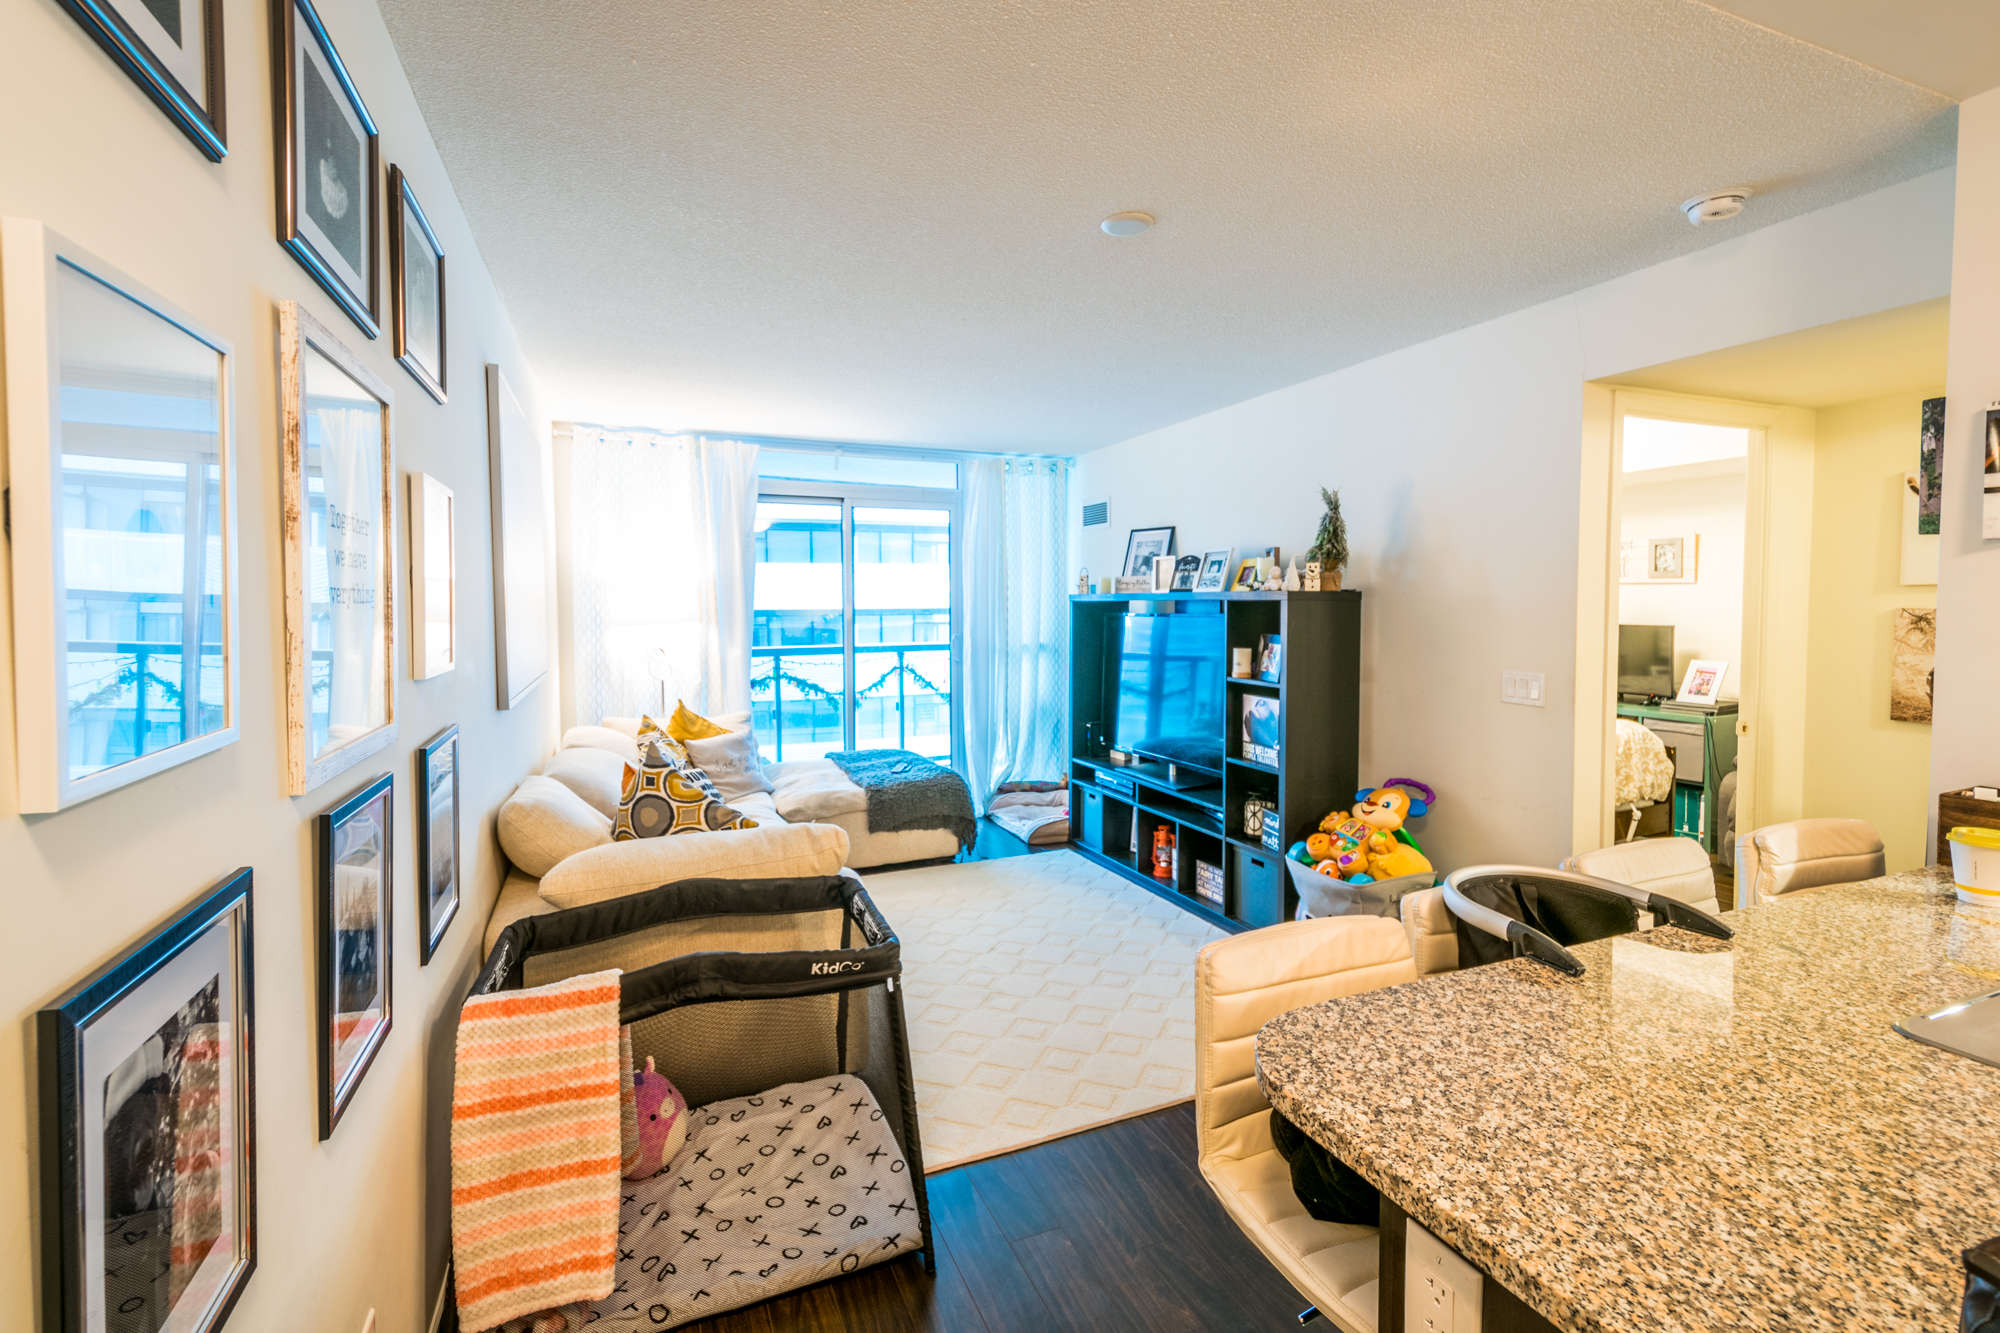 2807-19 Grand Trunk Cres – Toronto, ON